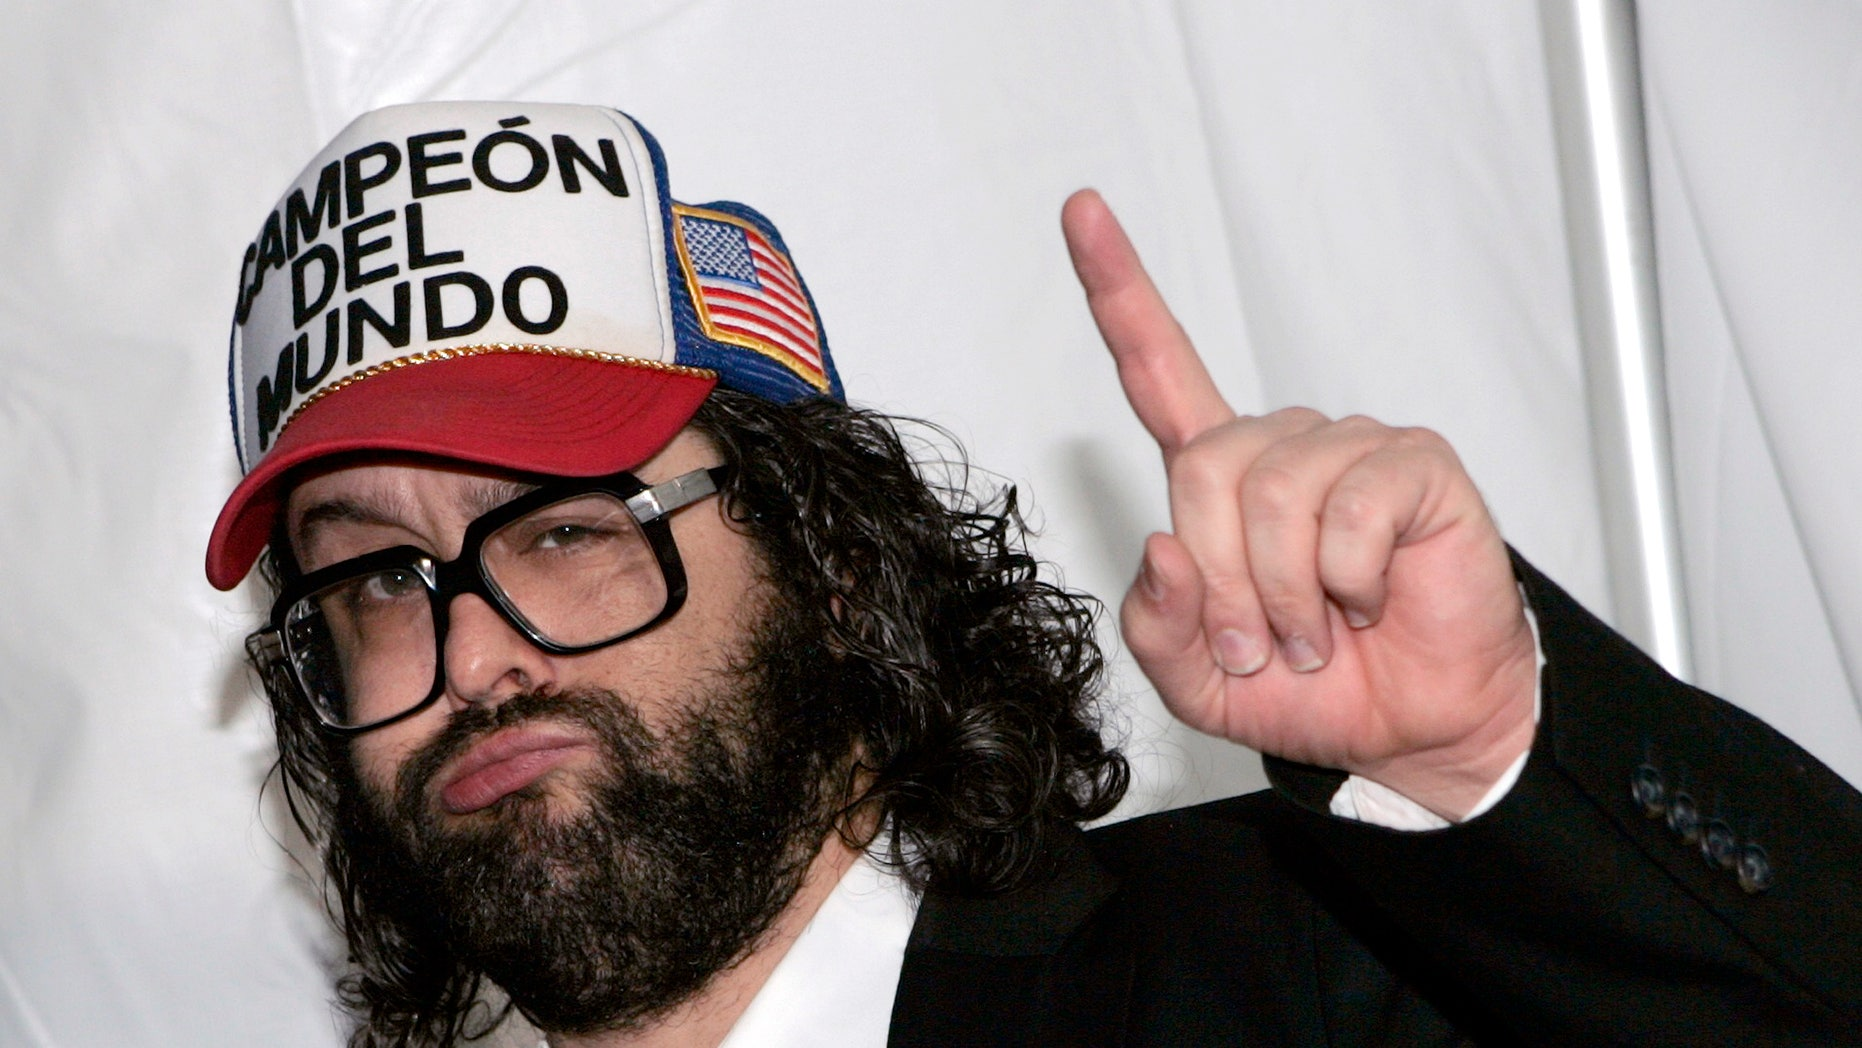 """Actor Judah Friedlander from NBC's comedy series """"30 Rock"""" arrives at the NBC Universal Experience as part of upfront week in New York on May 12, 2008.     REUTERS/Shannon Stapleton (UNITED STATES) - RTX5MIZ"""